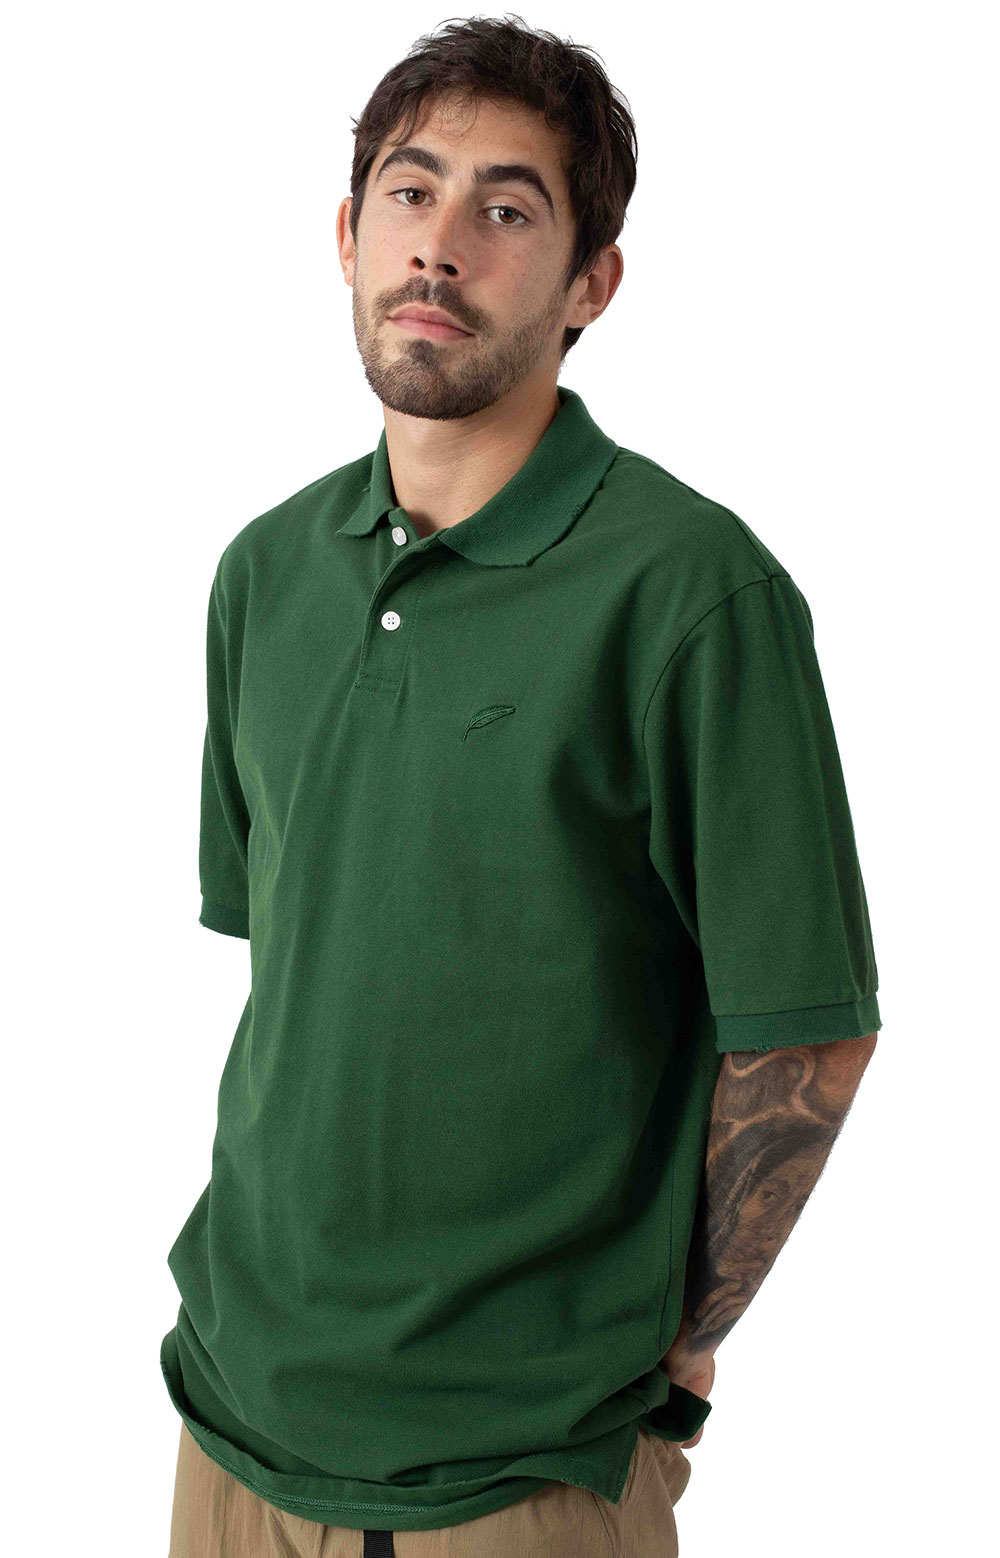 Ernis S/S Polo Shirt - Olive 2